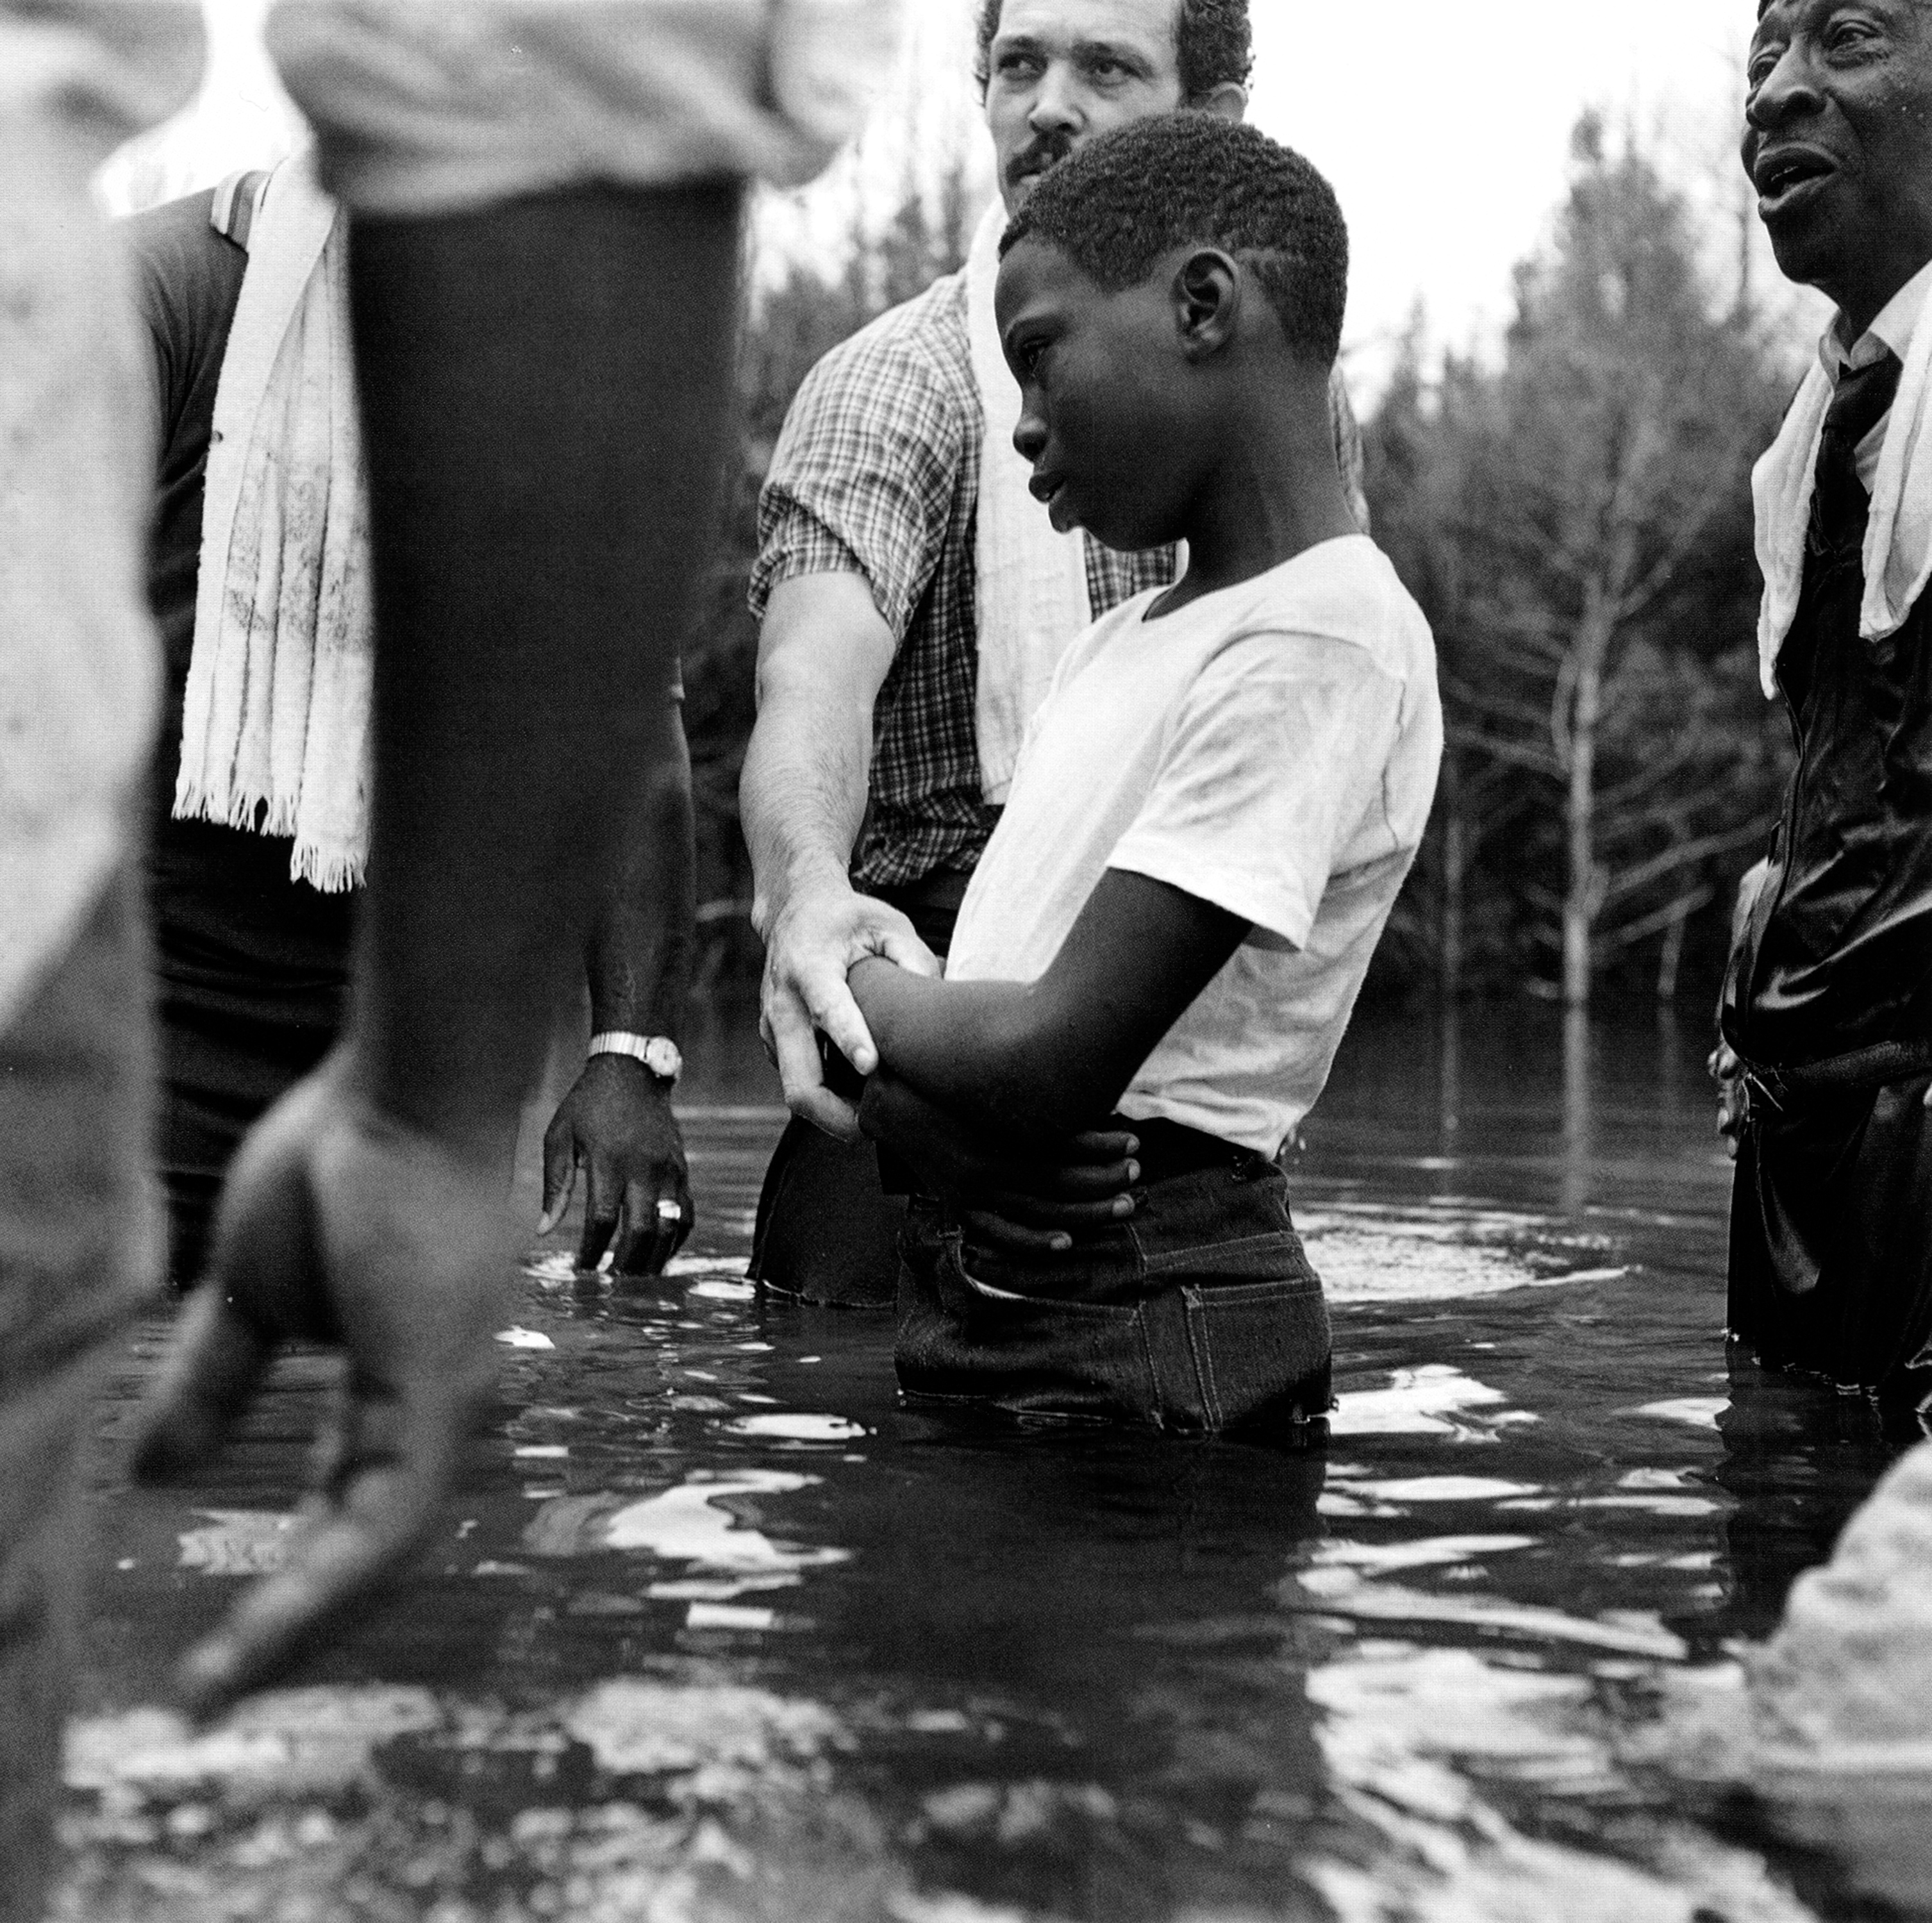 Oakland Baptism, Crawford, Mississippi, 1979. Photo by Birney Imes.